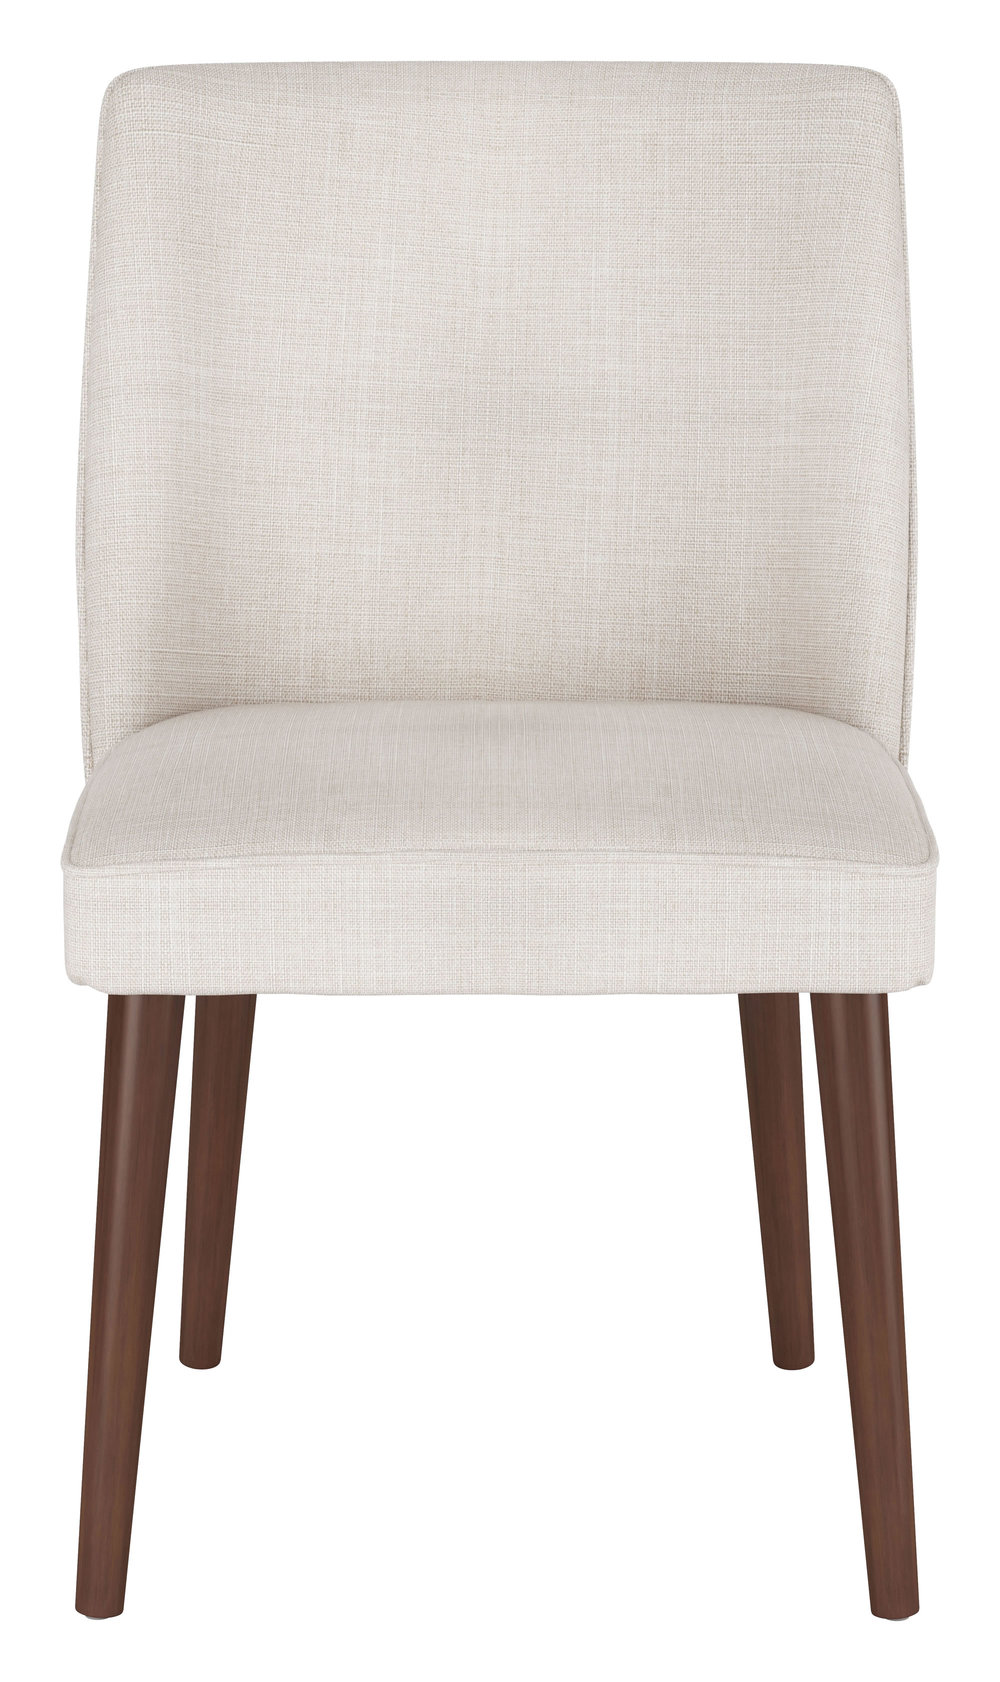 Zuo Modern Contemporary - Kennedy Dining Chair - Set of 2 - Beige